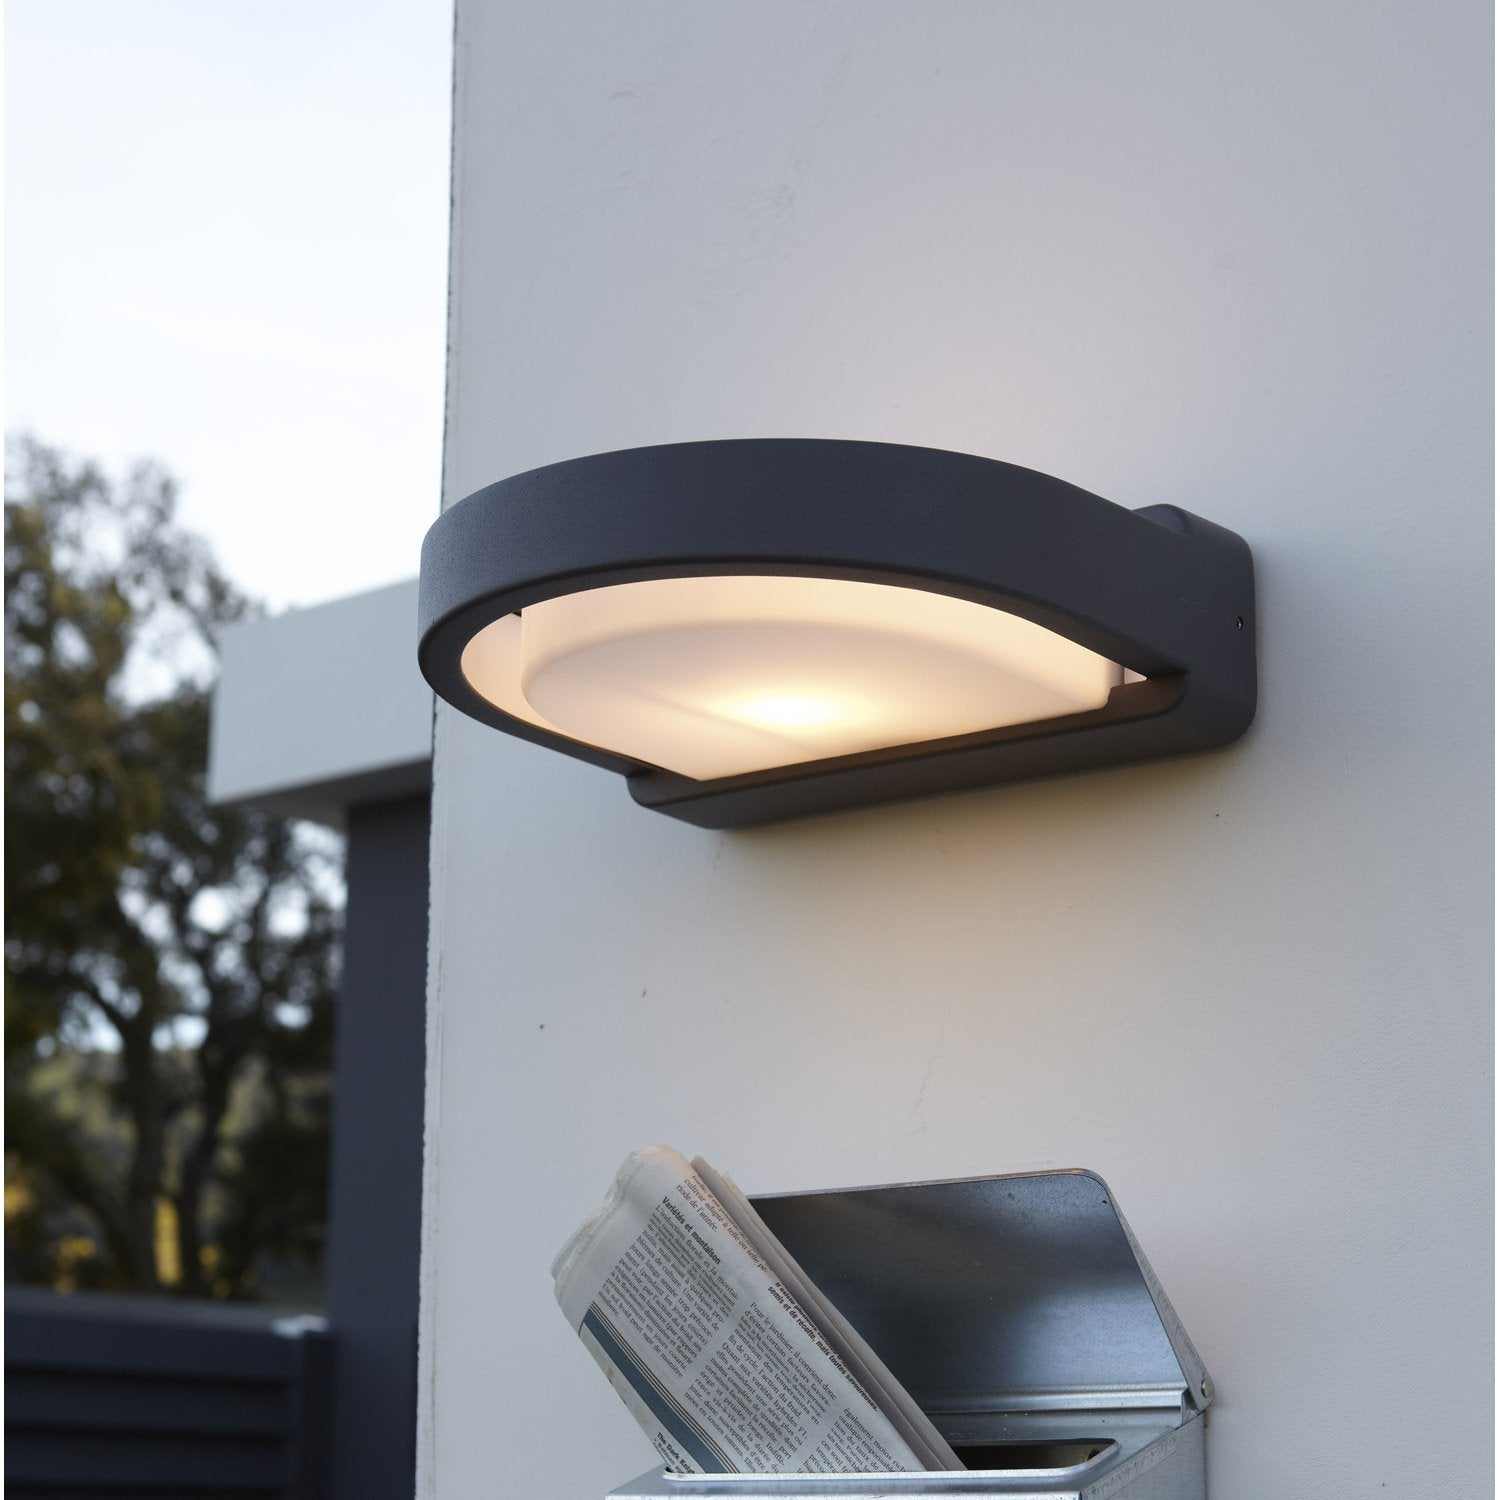 Applique ext rieure clifford e27 40 w anthracite inspire - Guirlandes lumineuses exterieures leroy merlin ...